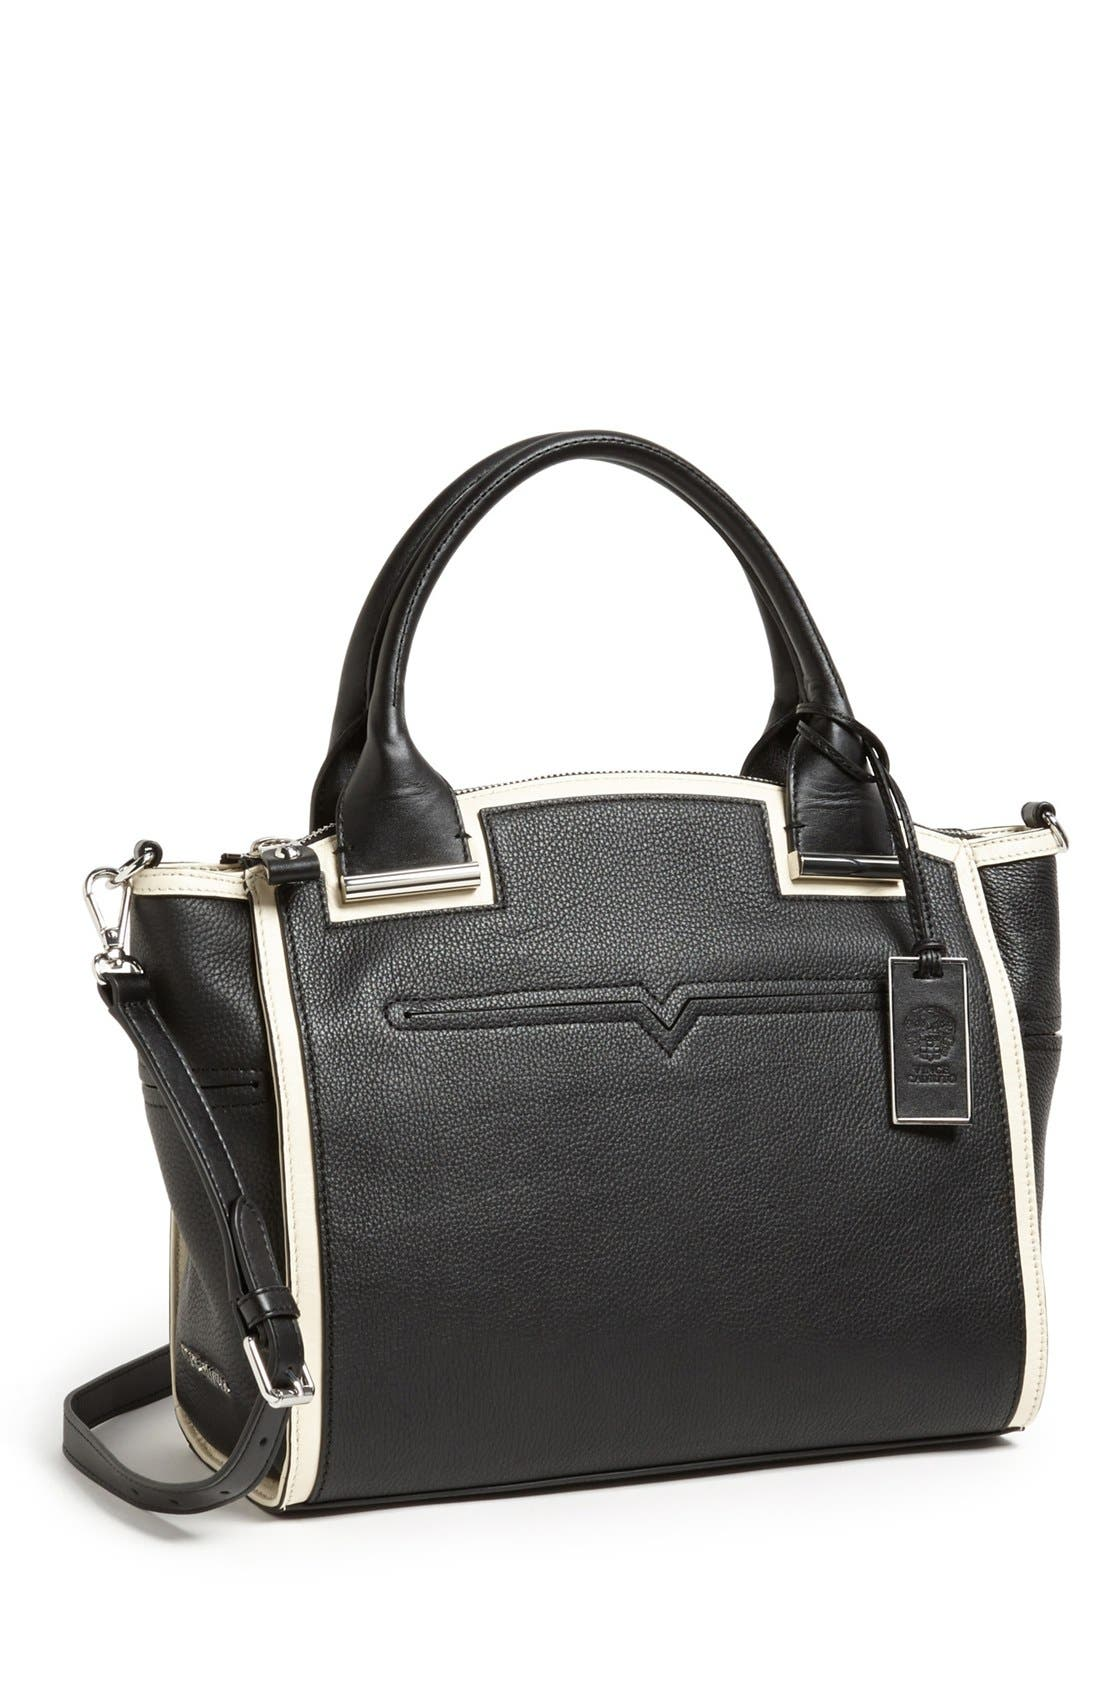 Alternate Image 1 Selected - Vince Camuto 'Billy' Satchel